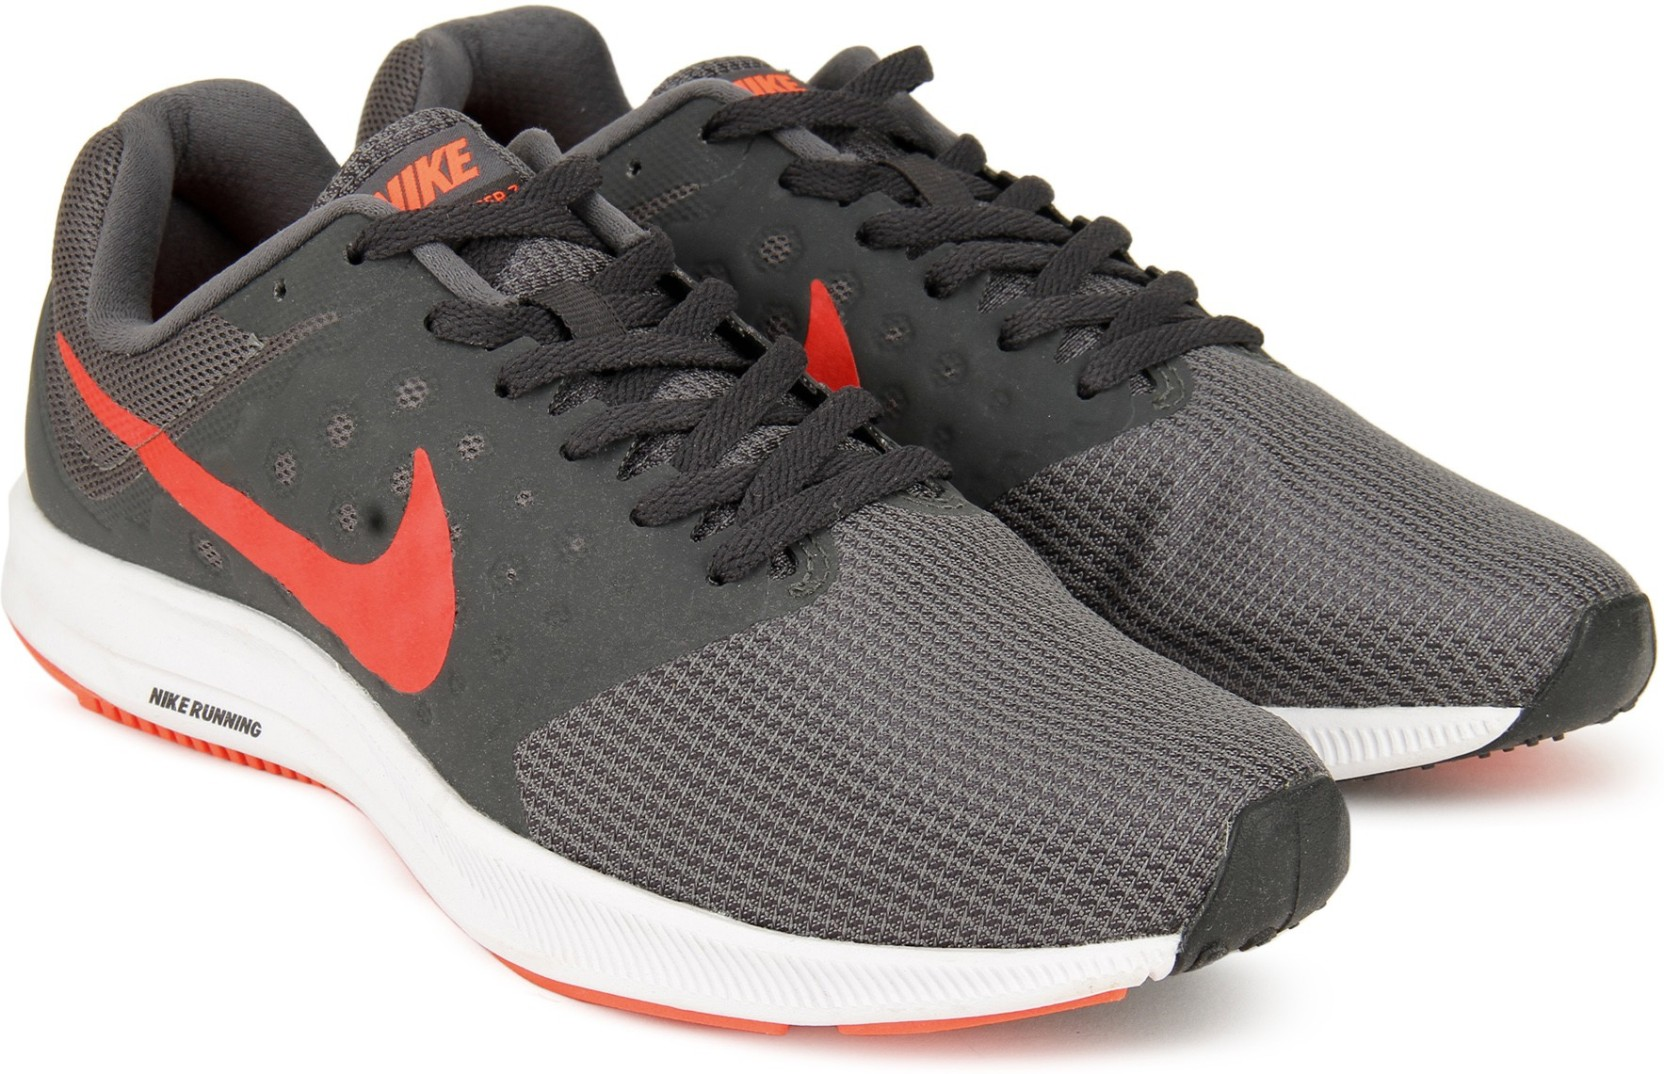 bc94db77791c Nike DOWNSHIFTER 7 Running Shoes For Men - Buy DARK GREY TOTAL ...